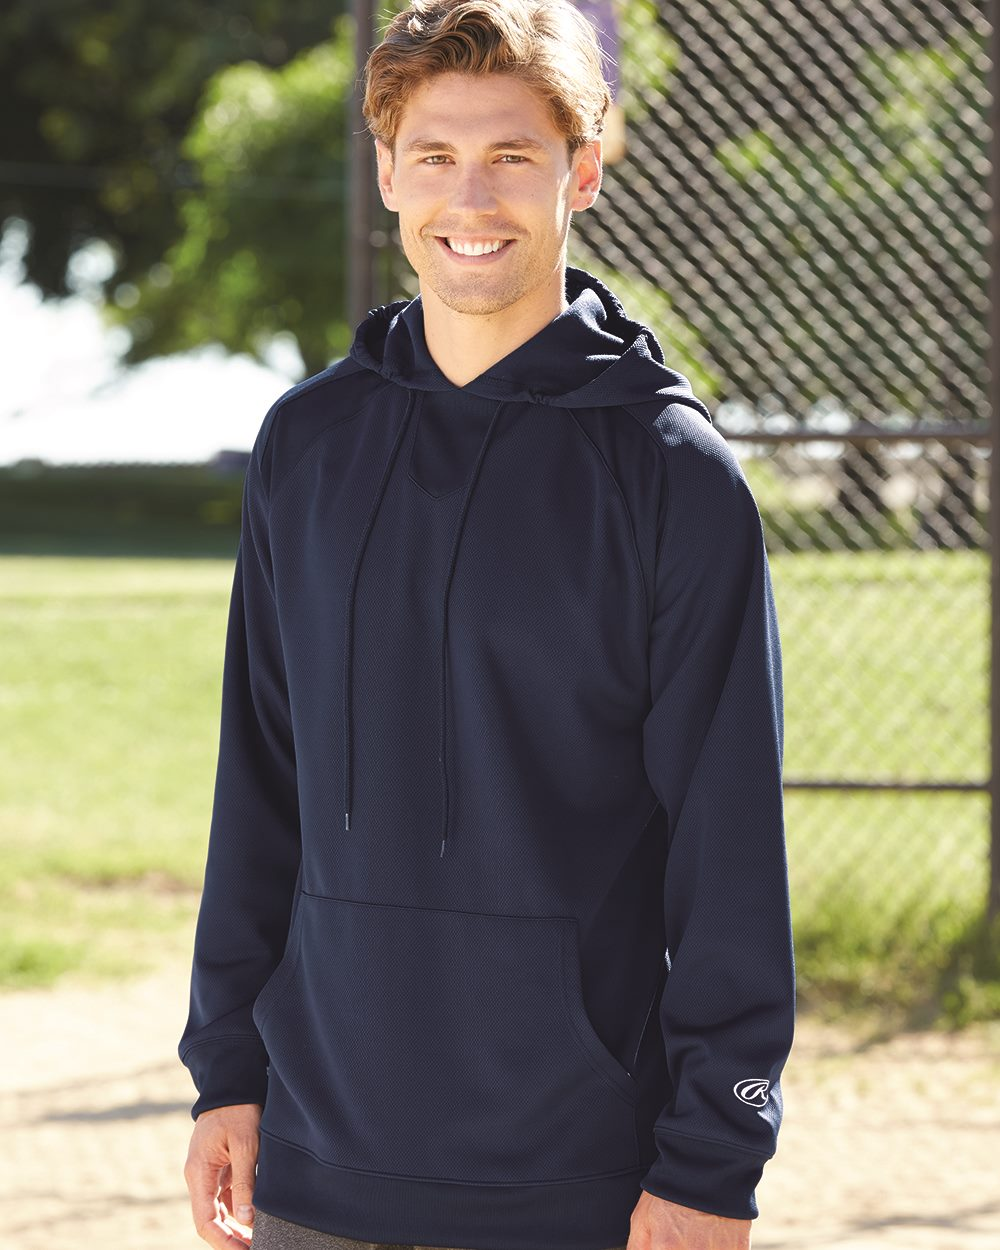 Rawlings 9709 - Mesh Fleece Hooded Sweatshirt